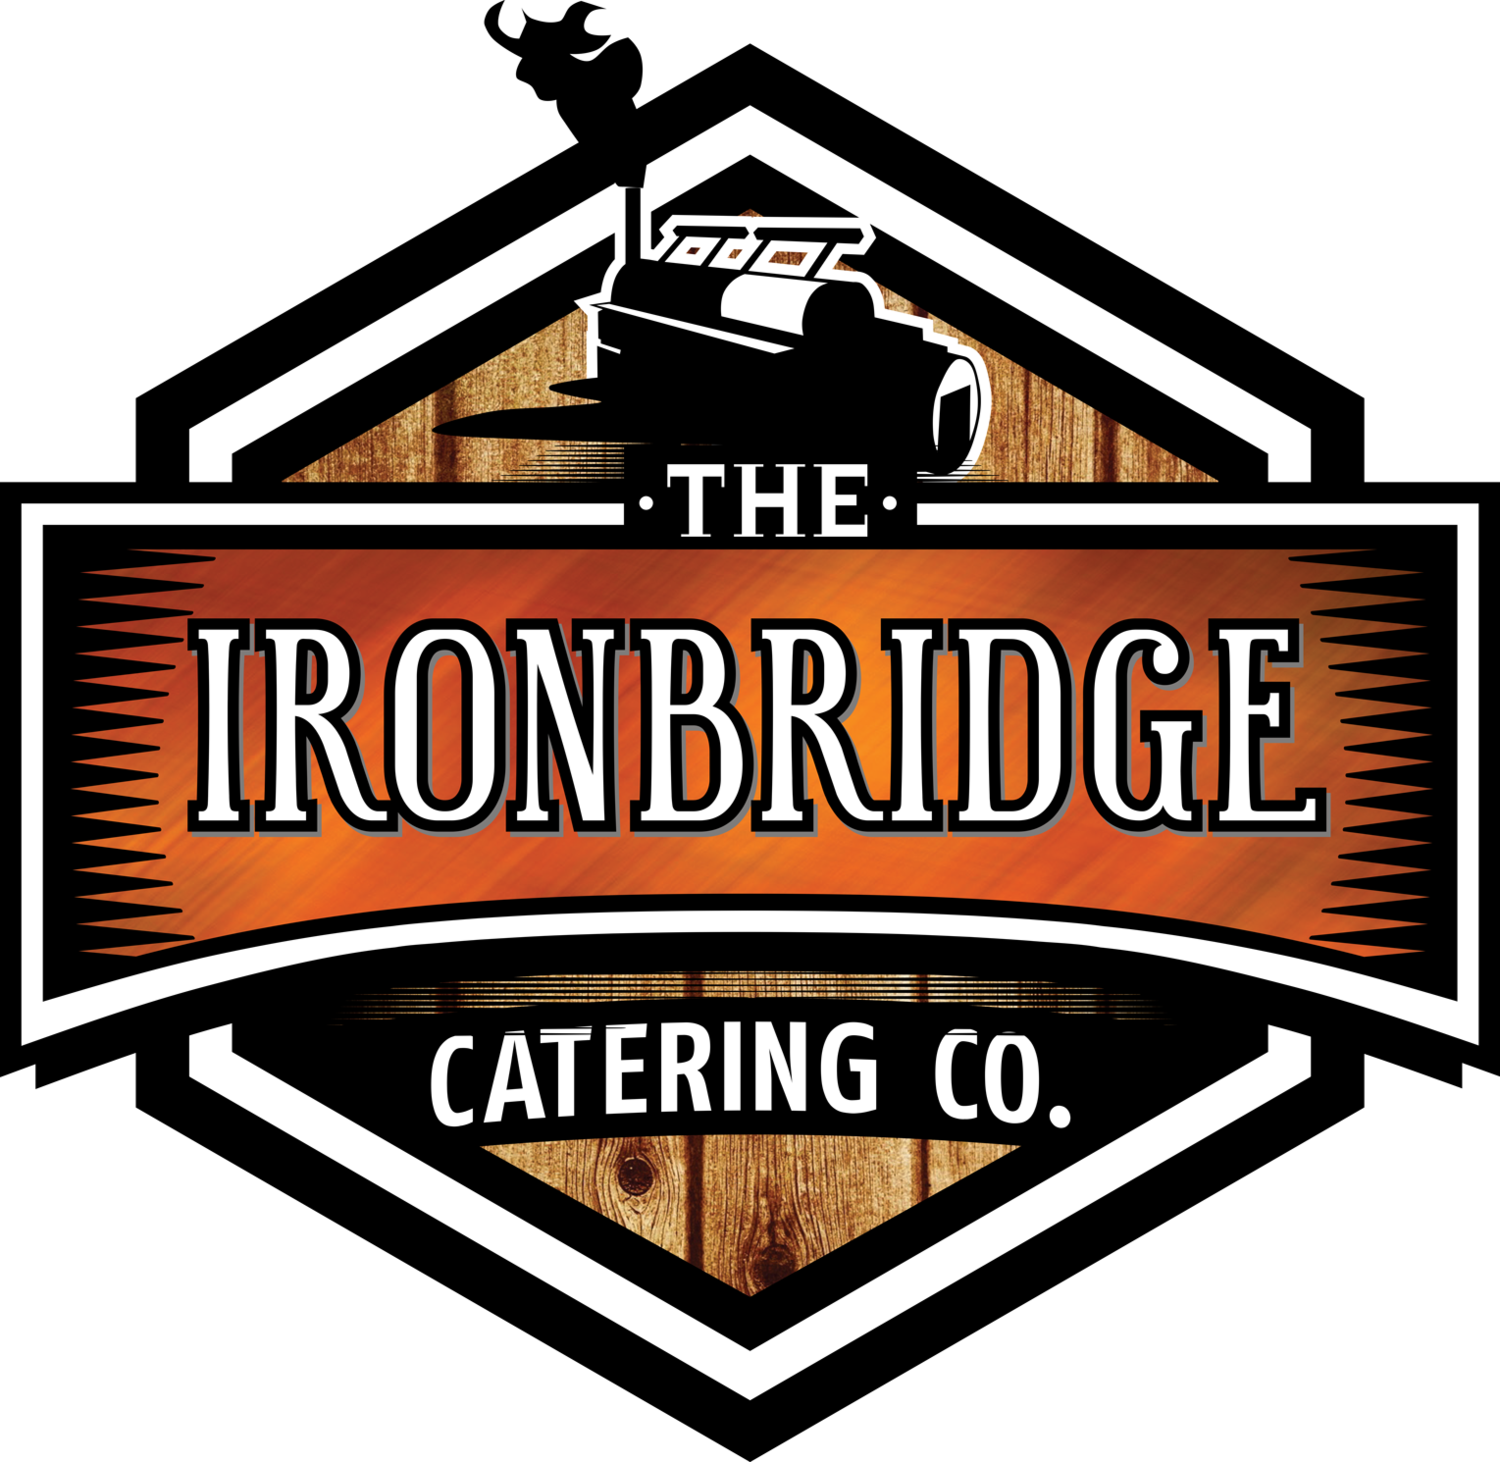 Ironbridge Catering